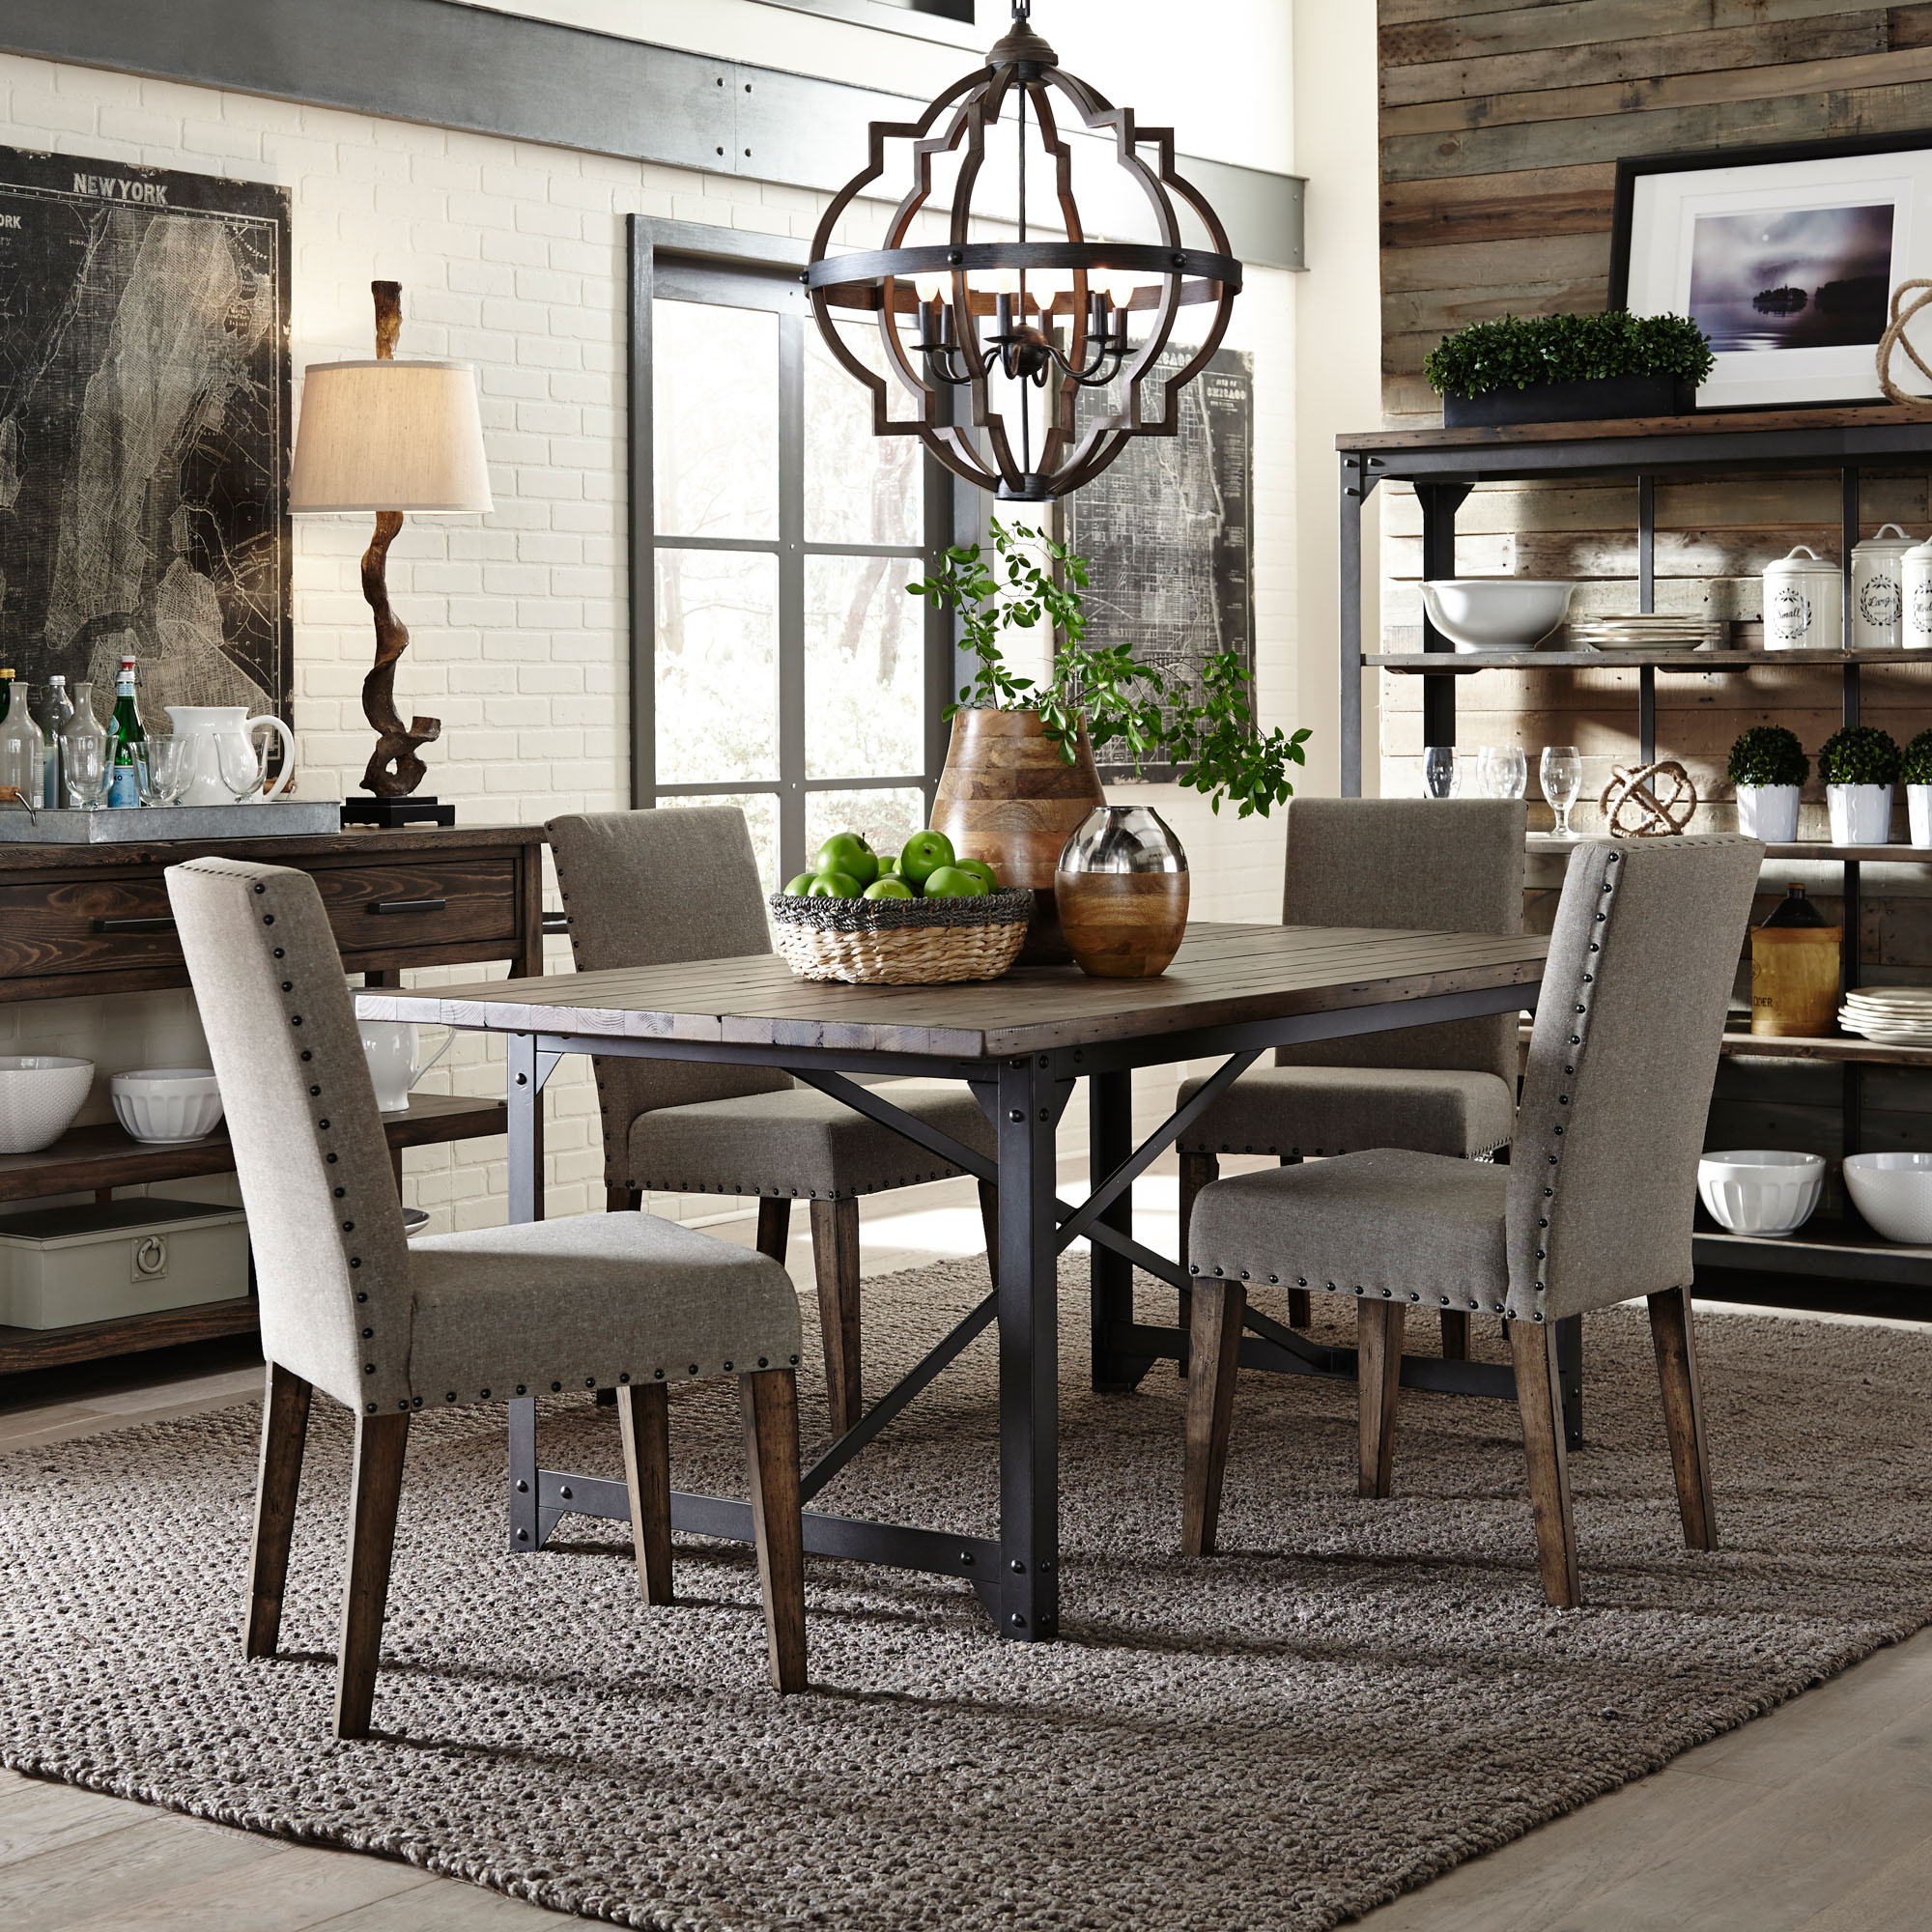 Dining Room Sets, Dining Room Furniture | Liberty Furniture Within 2017 Springfield 3 Piece Dining Sets (View 20 of 20)